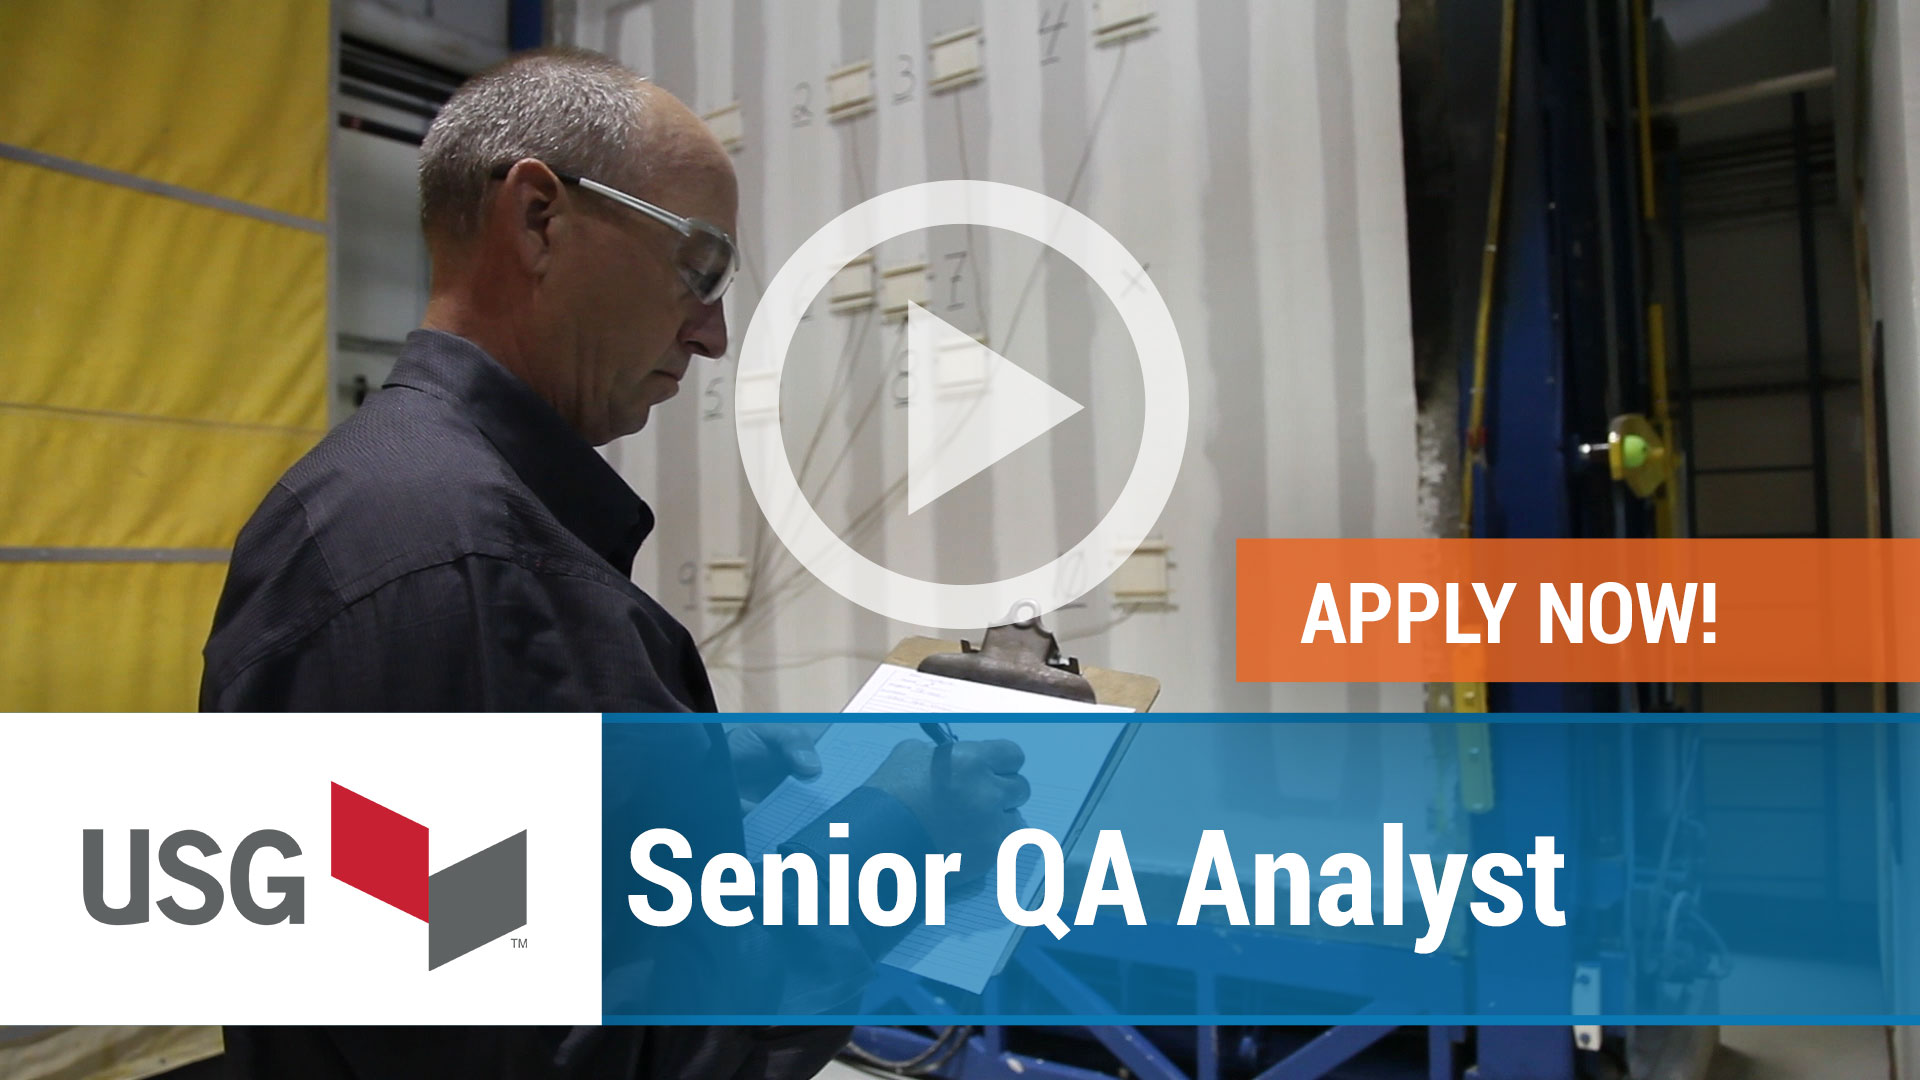 Watch our careers video for available job opening Senior QA Analyst in Chicago, IL, USA